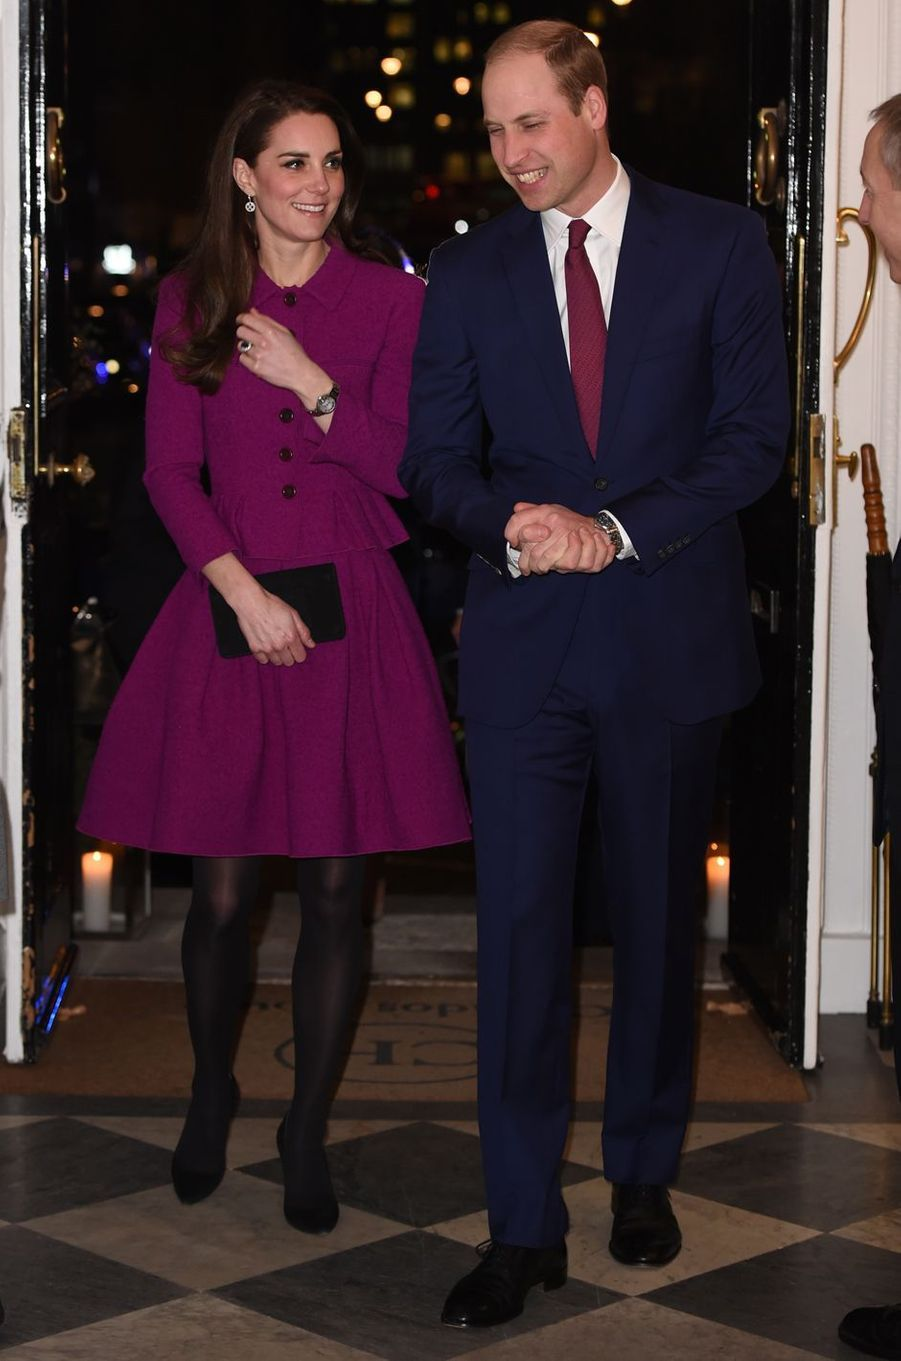 La duchesse de Cambridge, née Kate Middleton, avec le prince William à Londres, le 6 février 2017